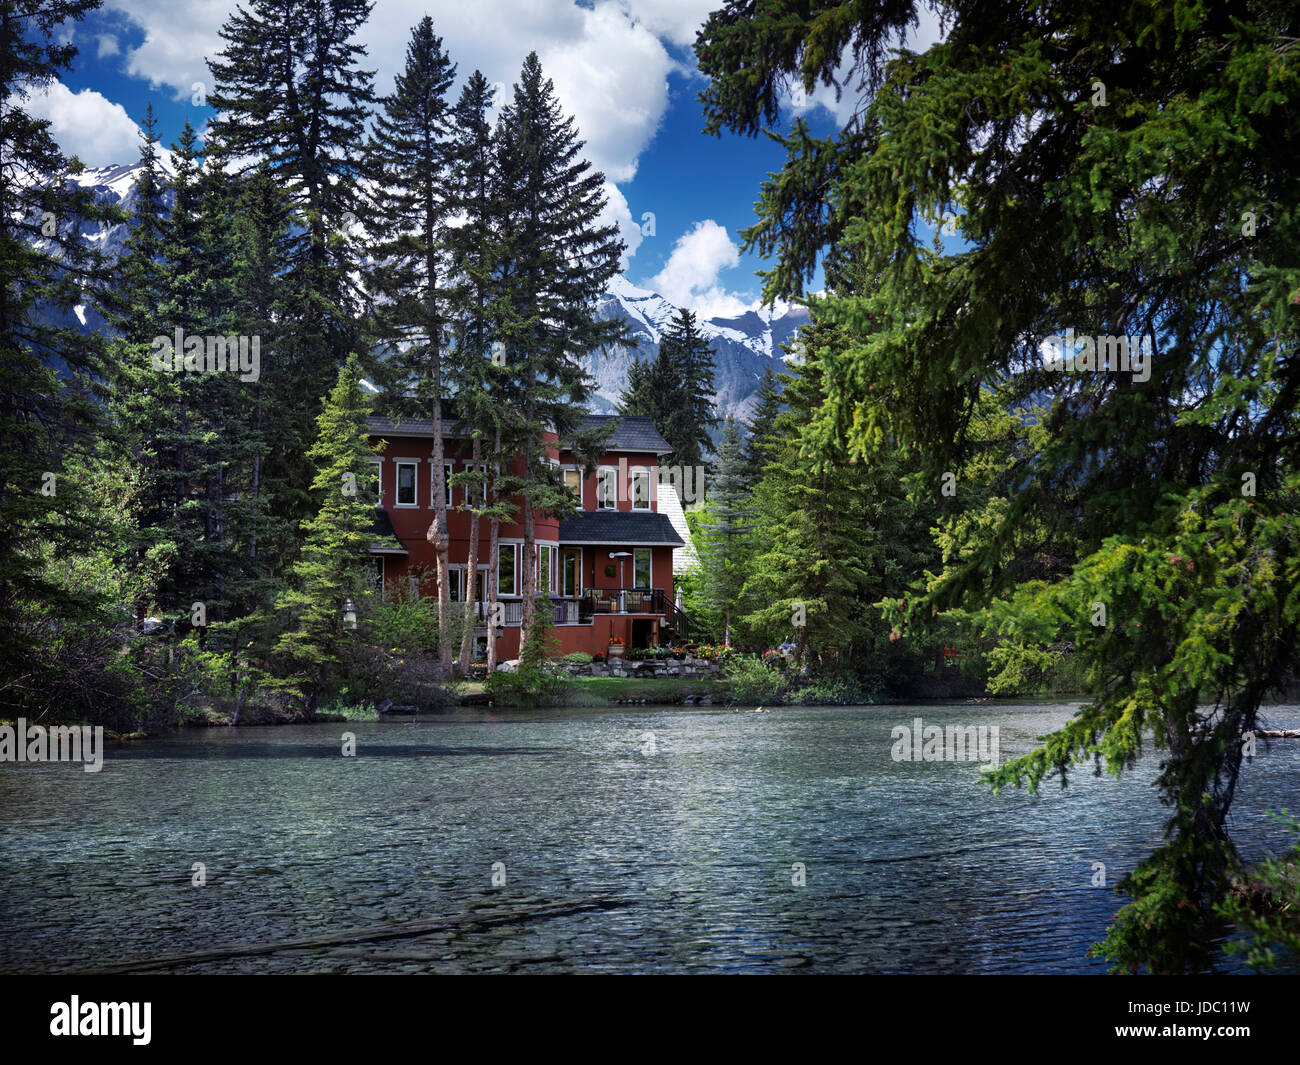 Beautiful Spring Nature Scenery Of A Large Waterfront Family House